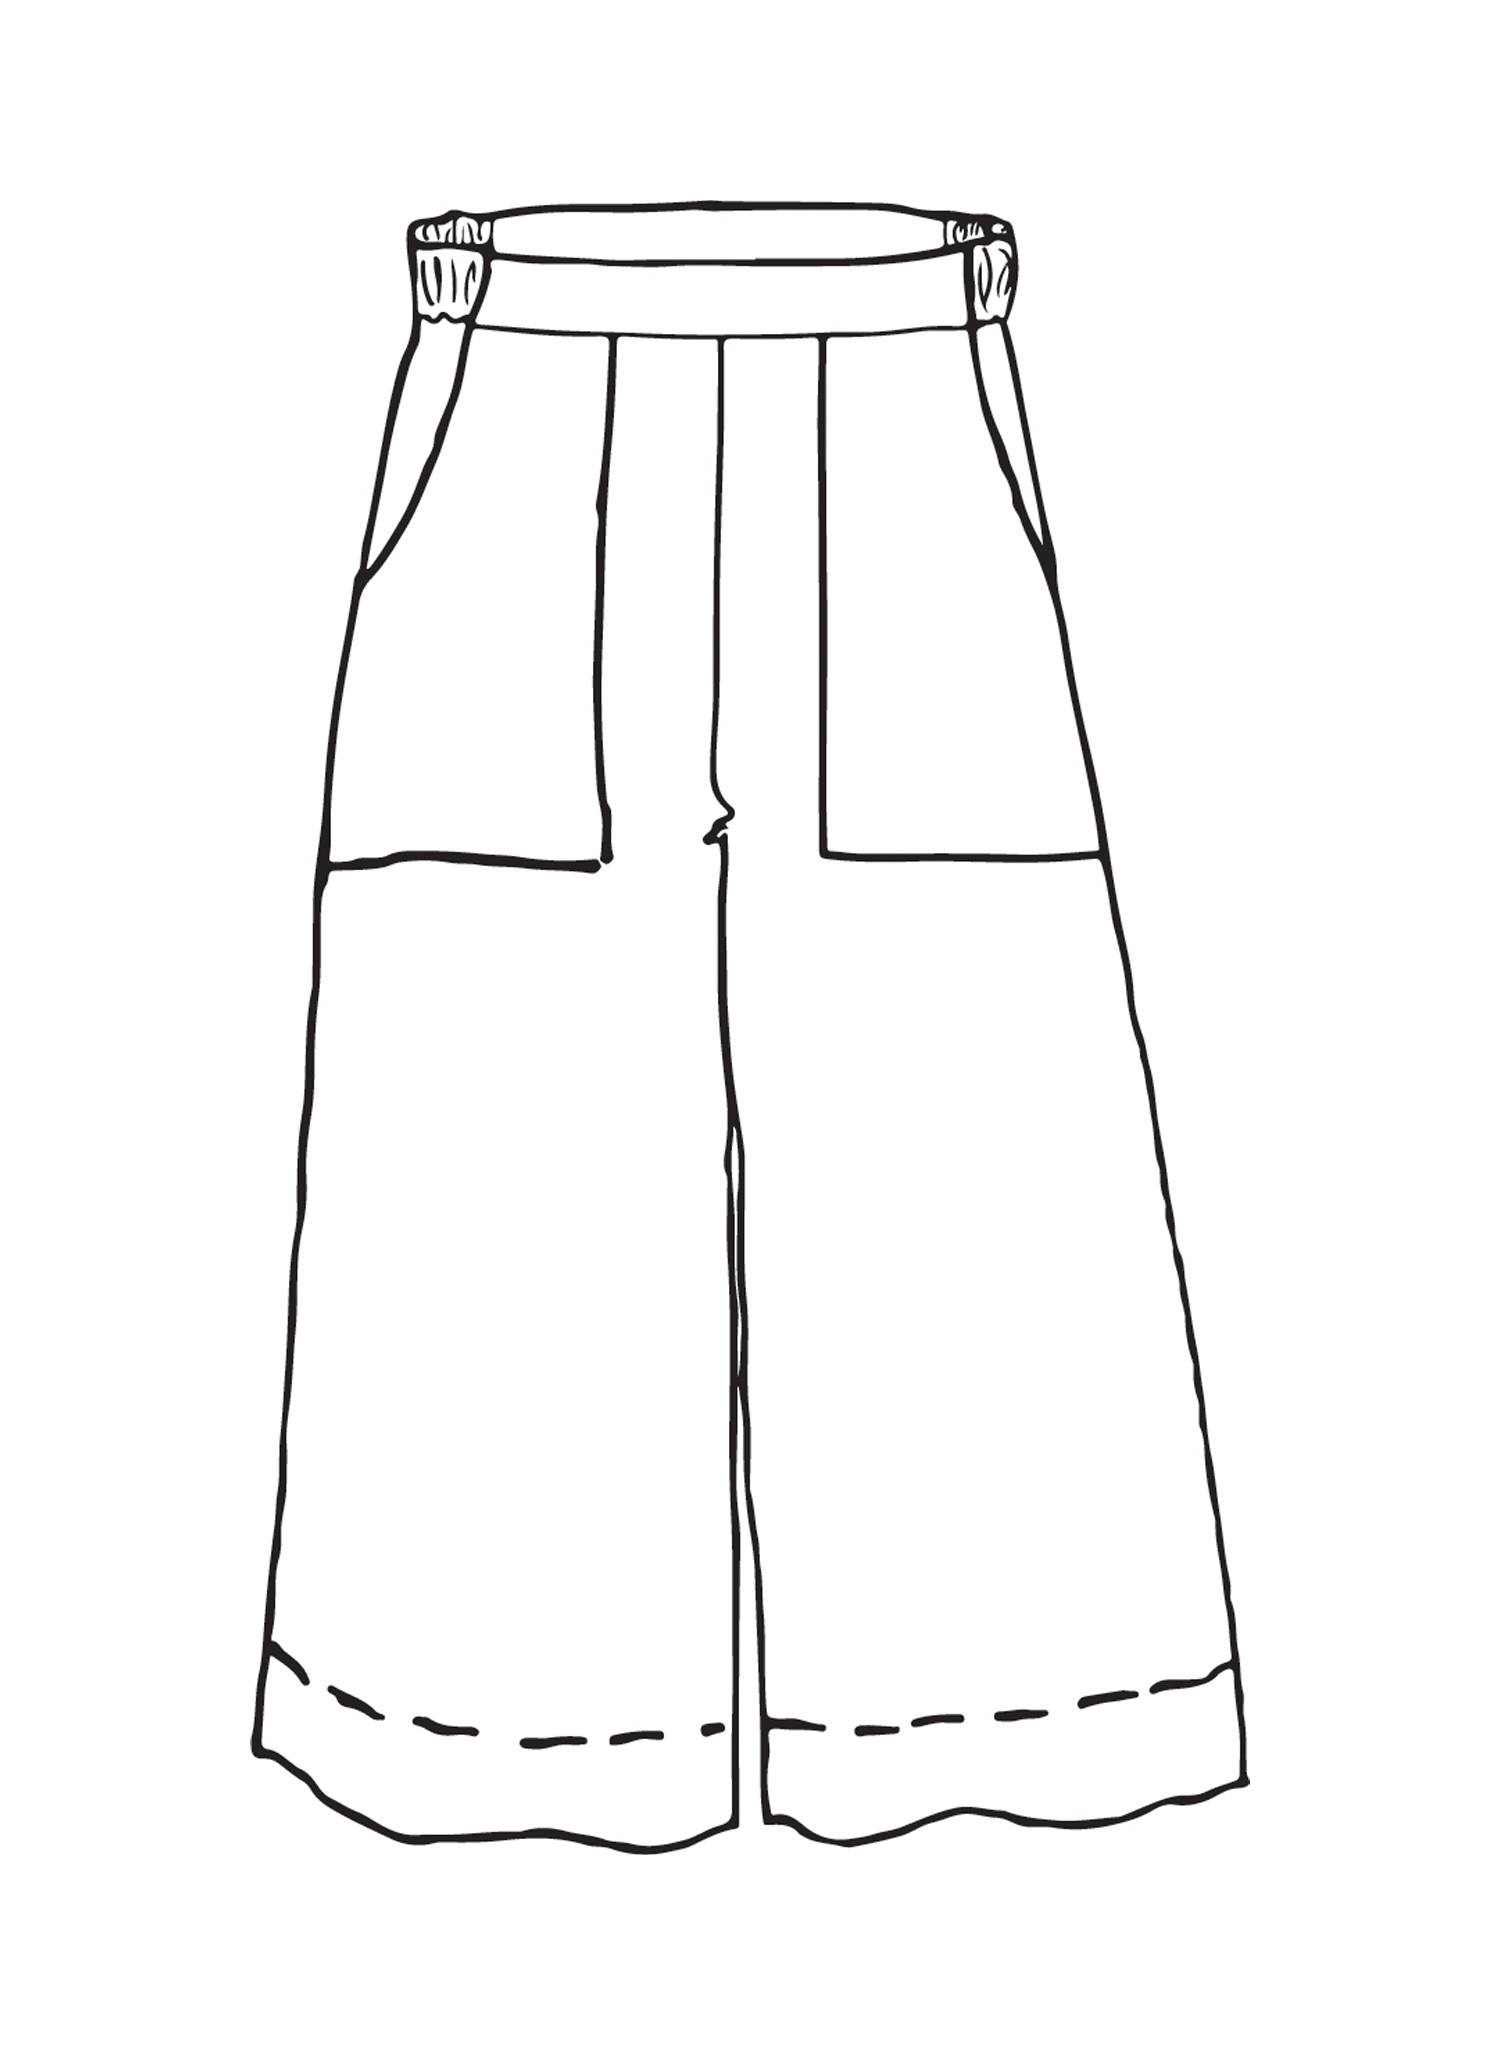 Kate Pant sketch image